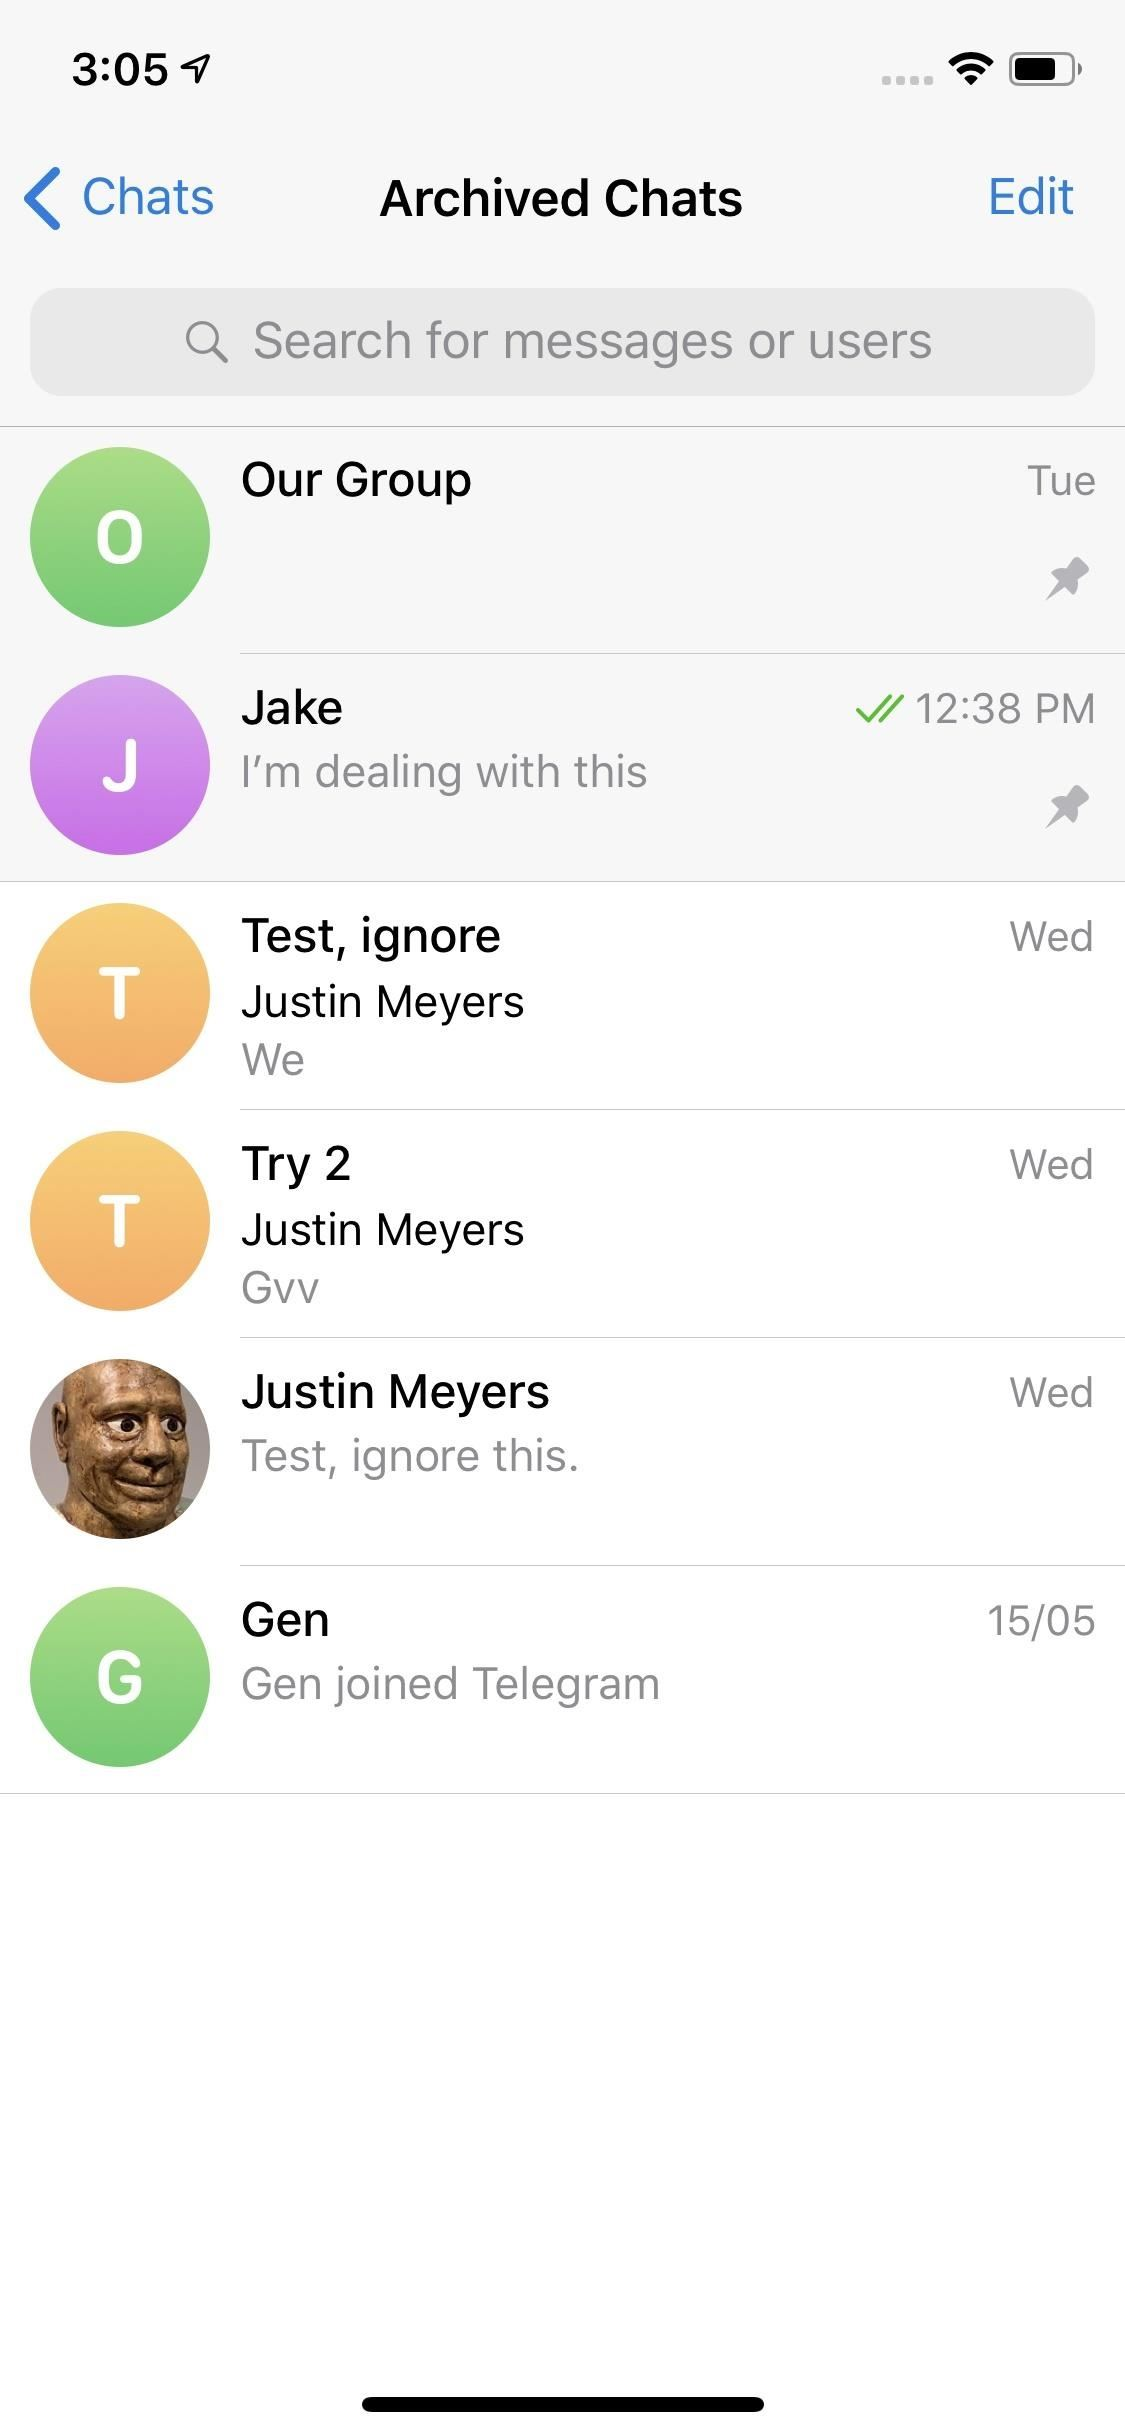 How to Archive Telegram Conversations to Keep Your Main